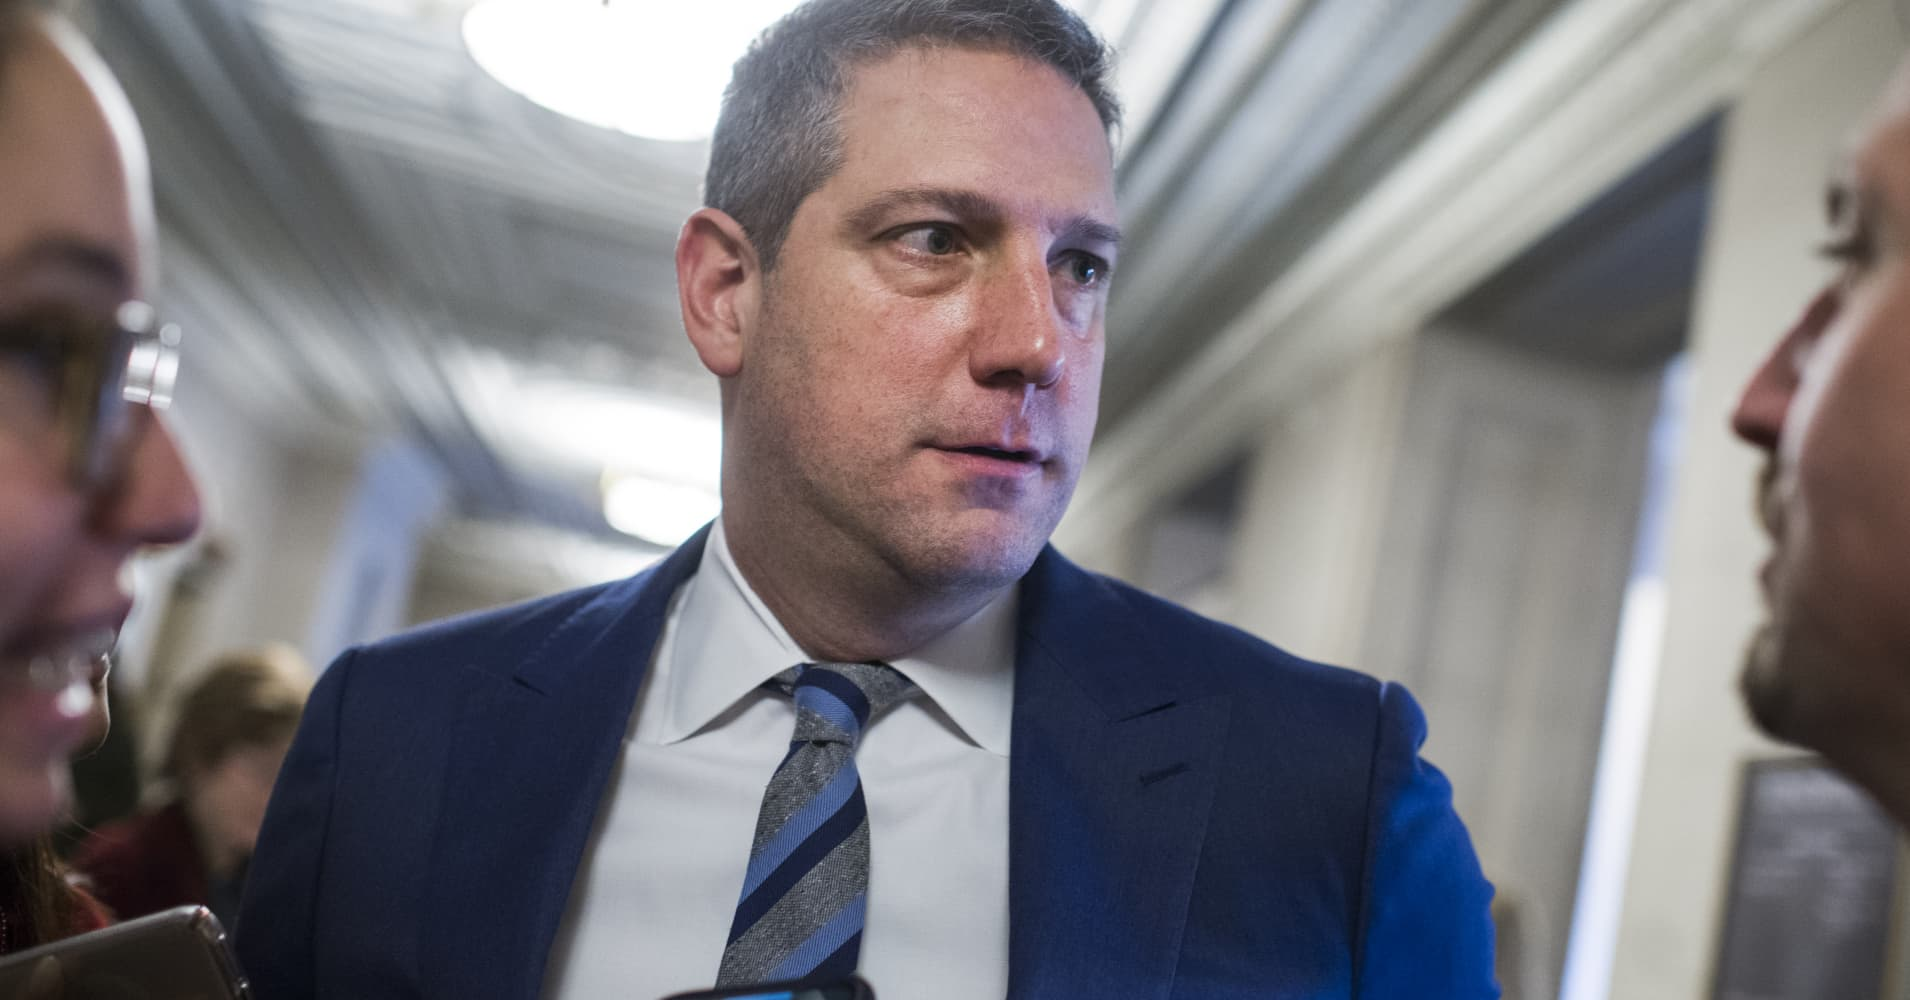 Ohio Rep. Tim Ryan — who once tried to take down Nancy Pelosi — is running for president